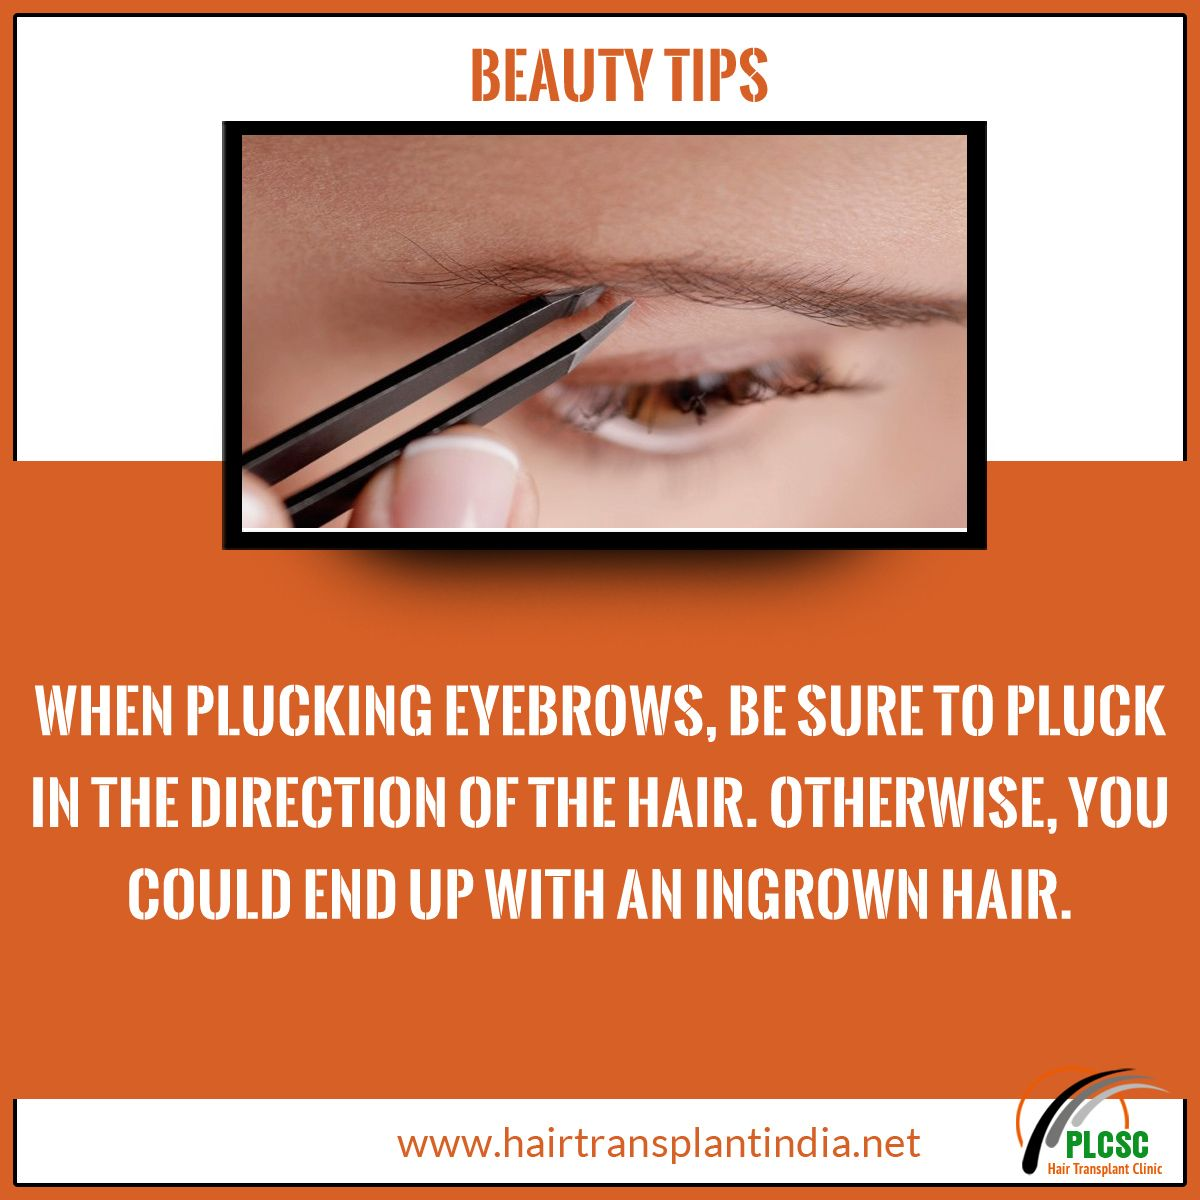 Beautytips When Plucking Eyebrows Be Sure To Pluck In The Direction